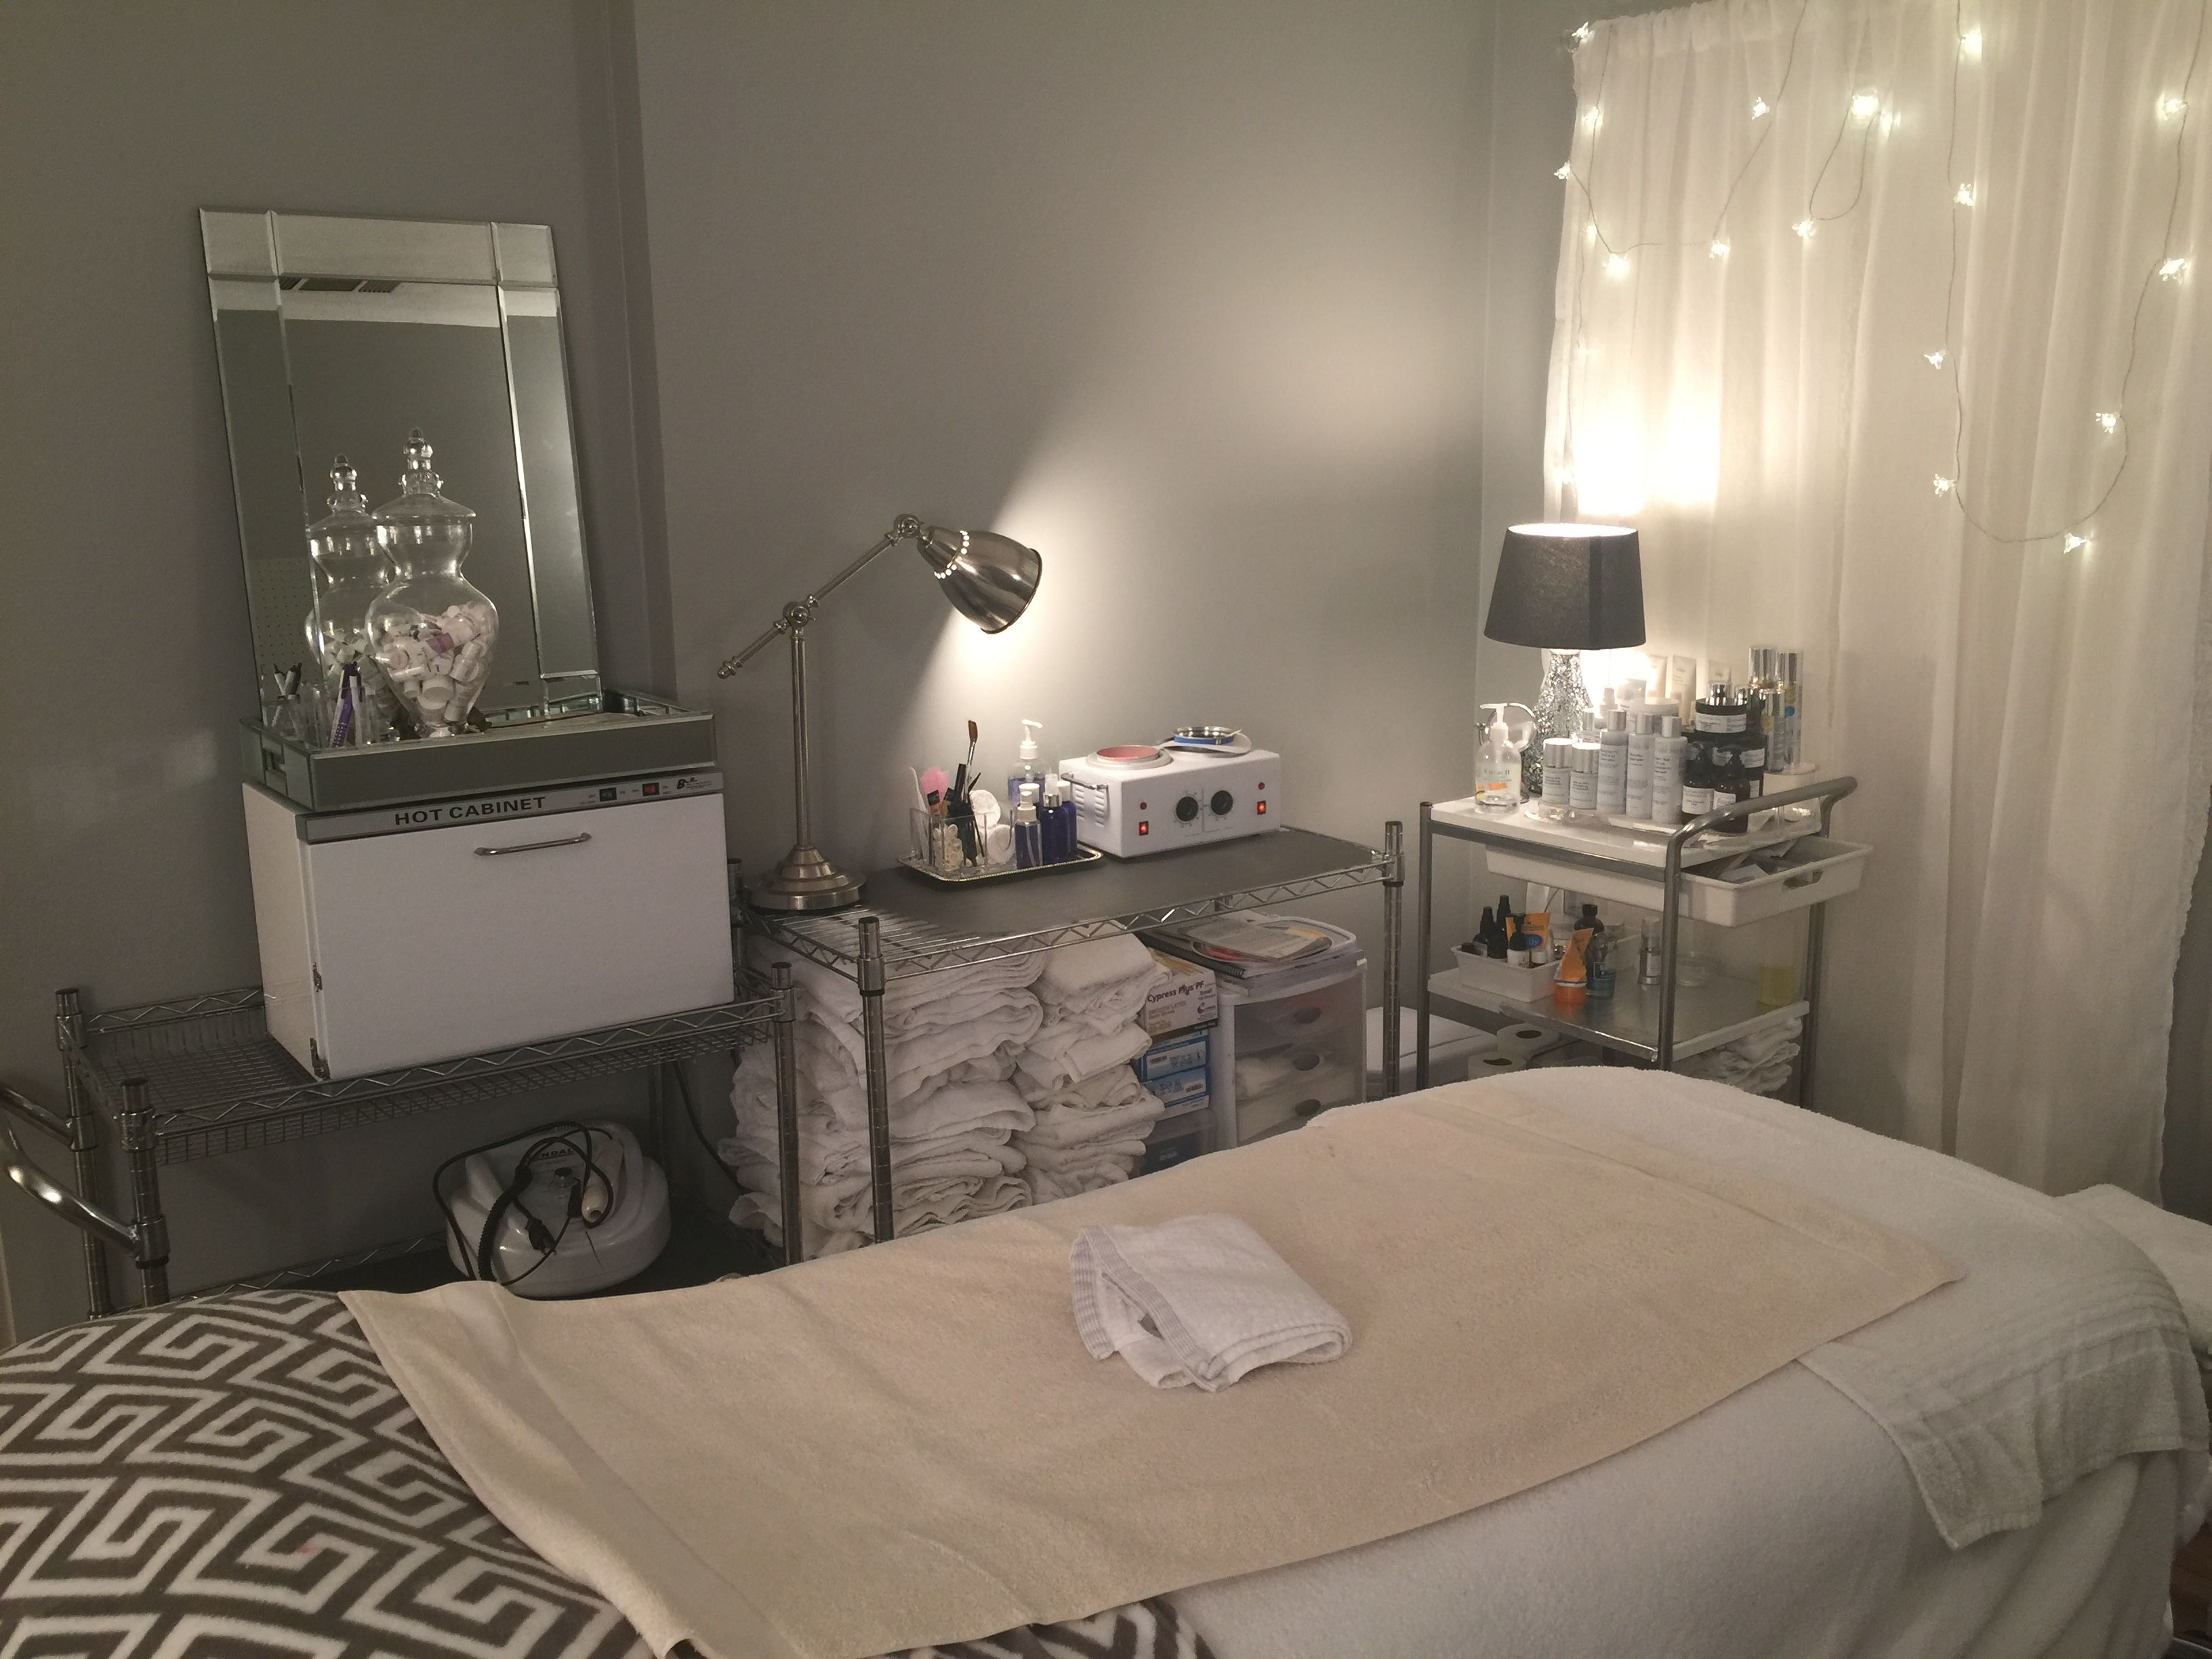 Home Spa Design Ideas: Skincare Studio, Skincare By Kimbella Offers A Variety Of